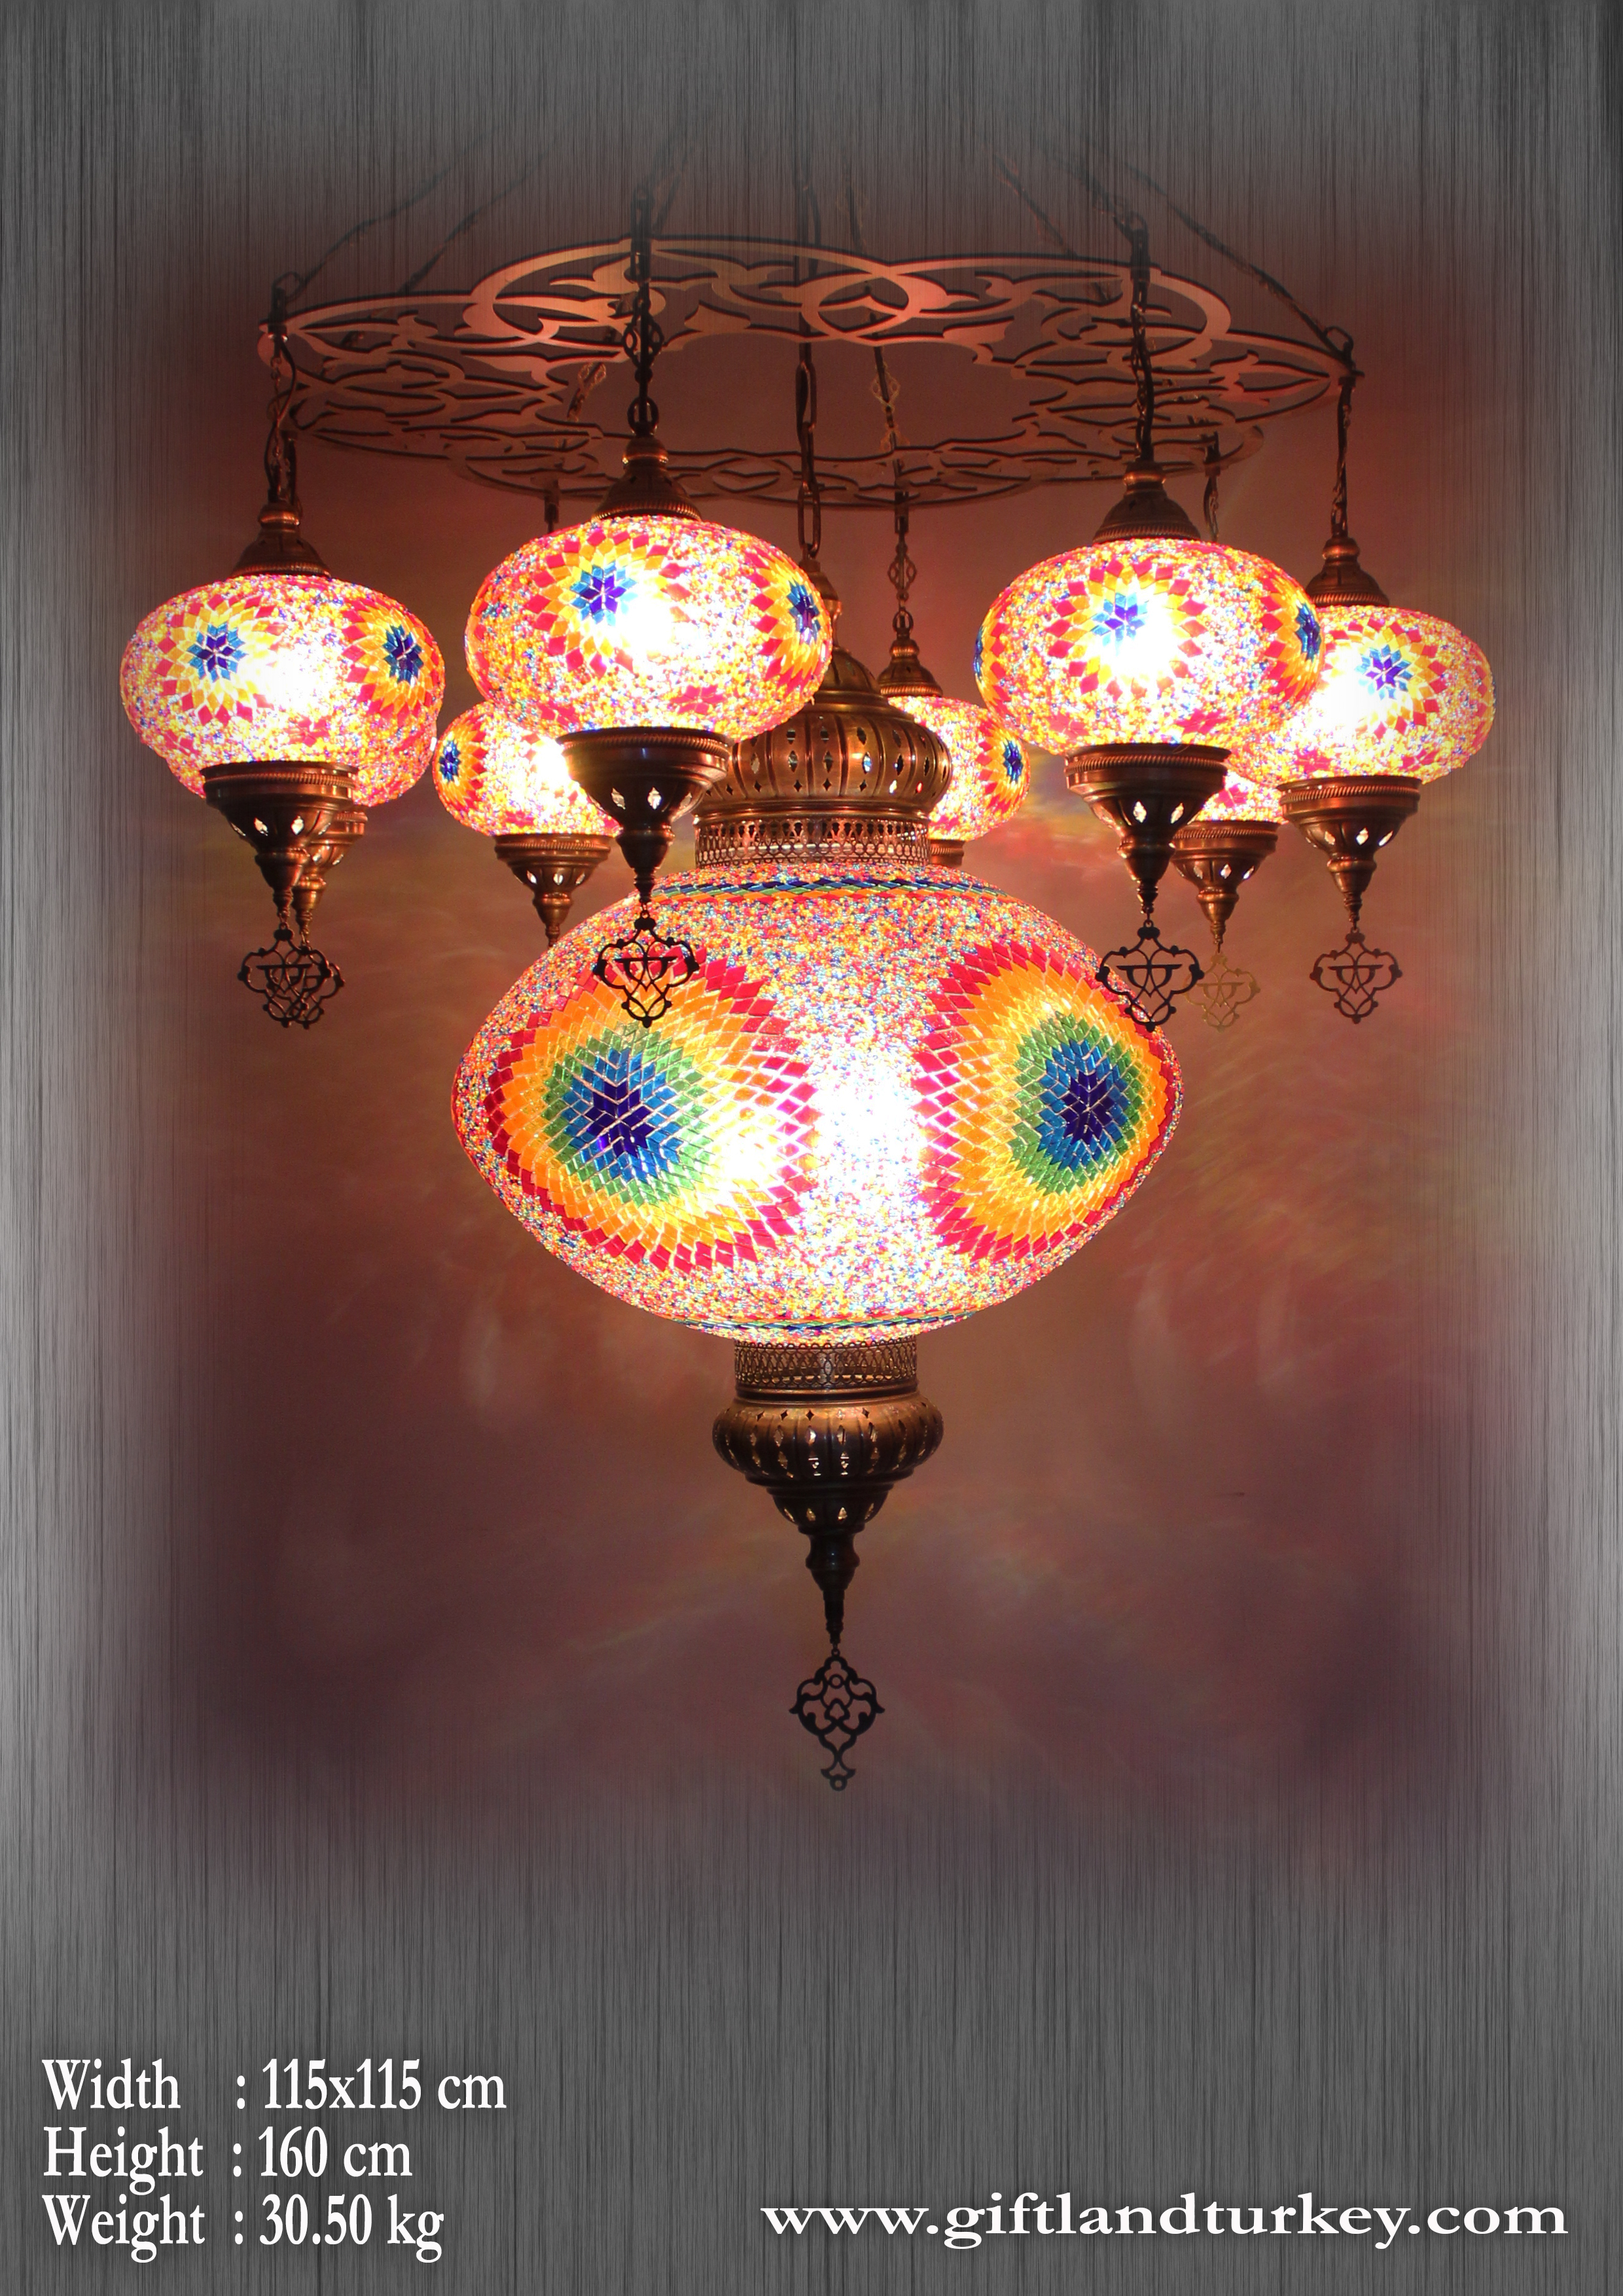 Turkish Mosaic Lamp make you feel different?